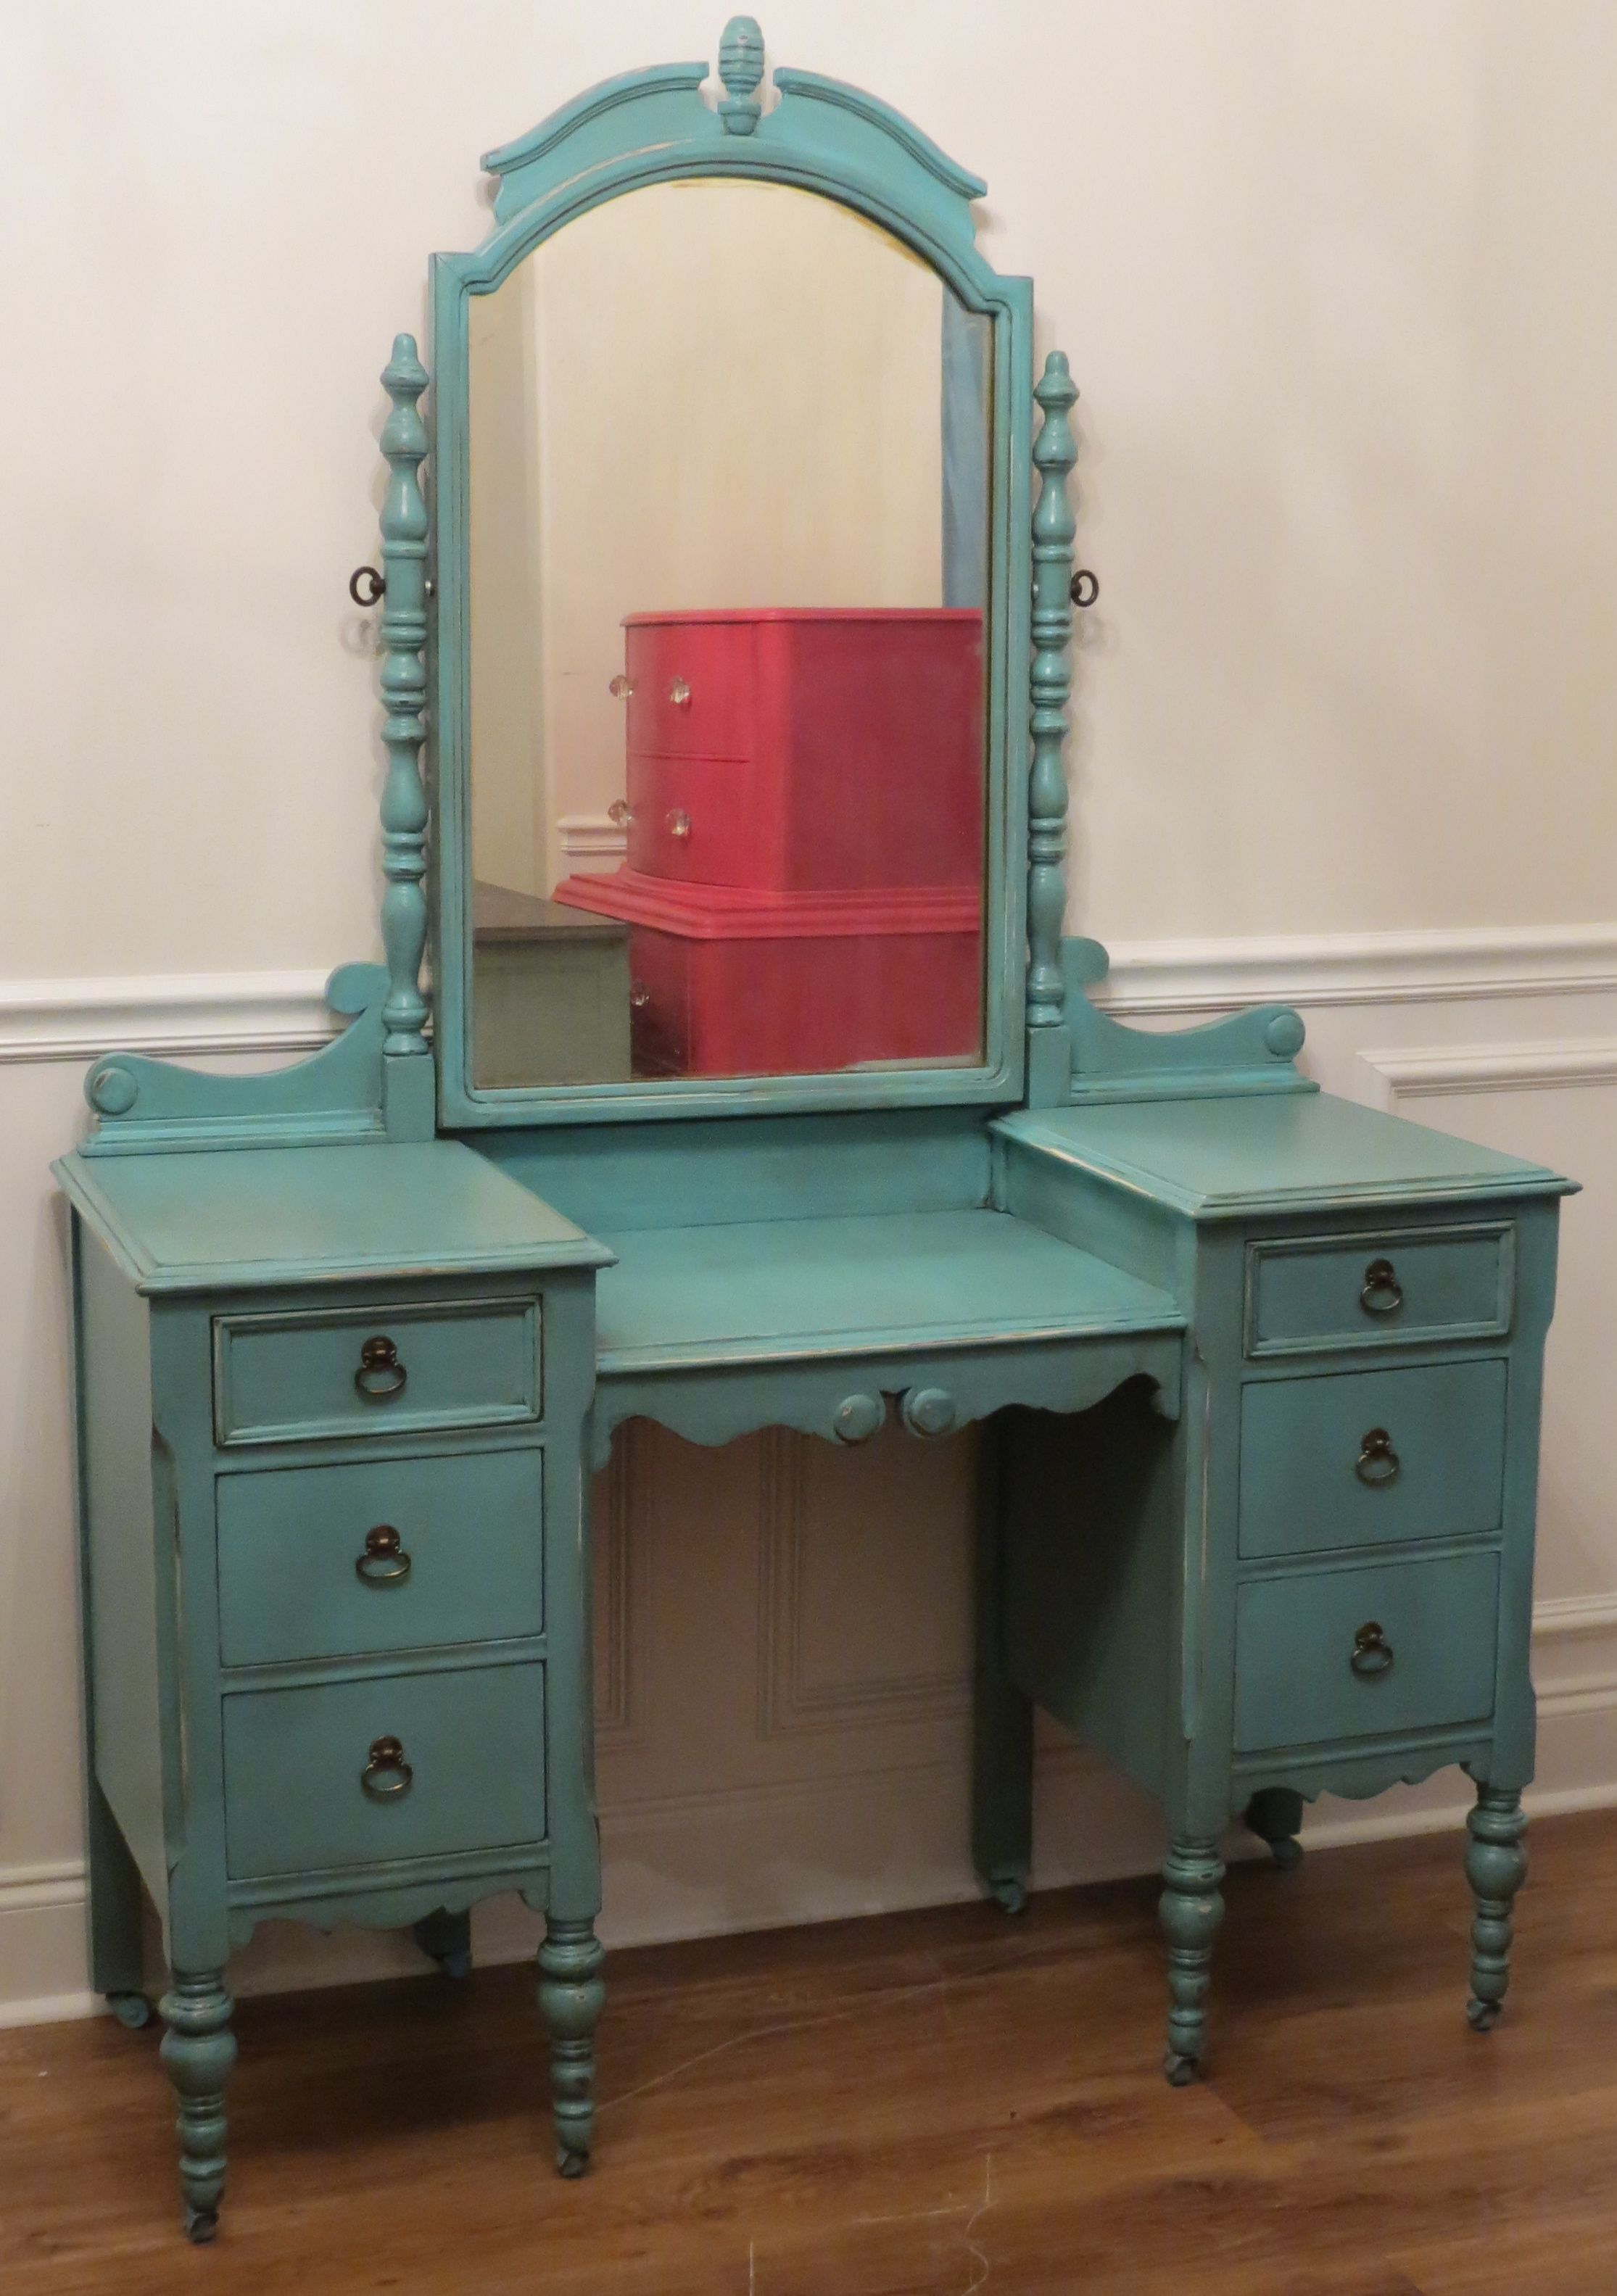 Turquoise vanity by chrissies collection desksvanities turquoise vanity by chrissies collection geotapseo Images